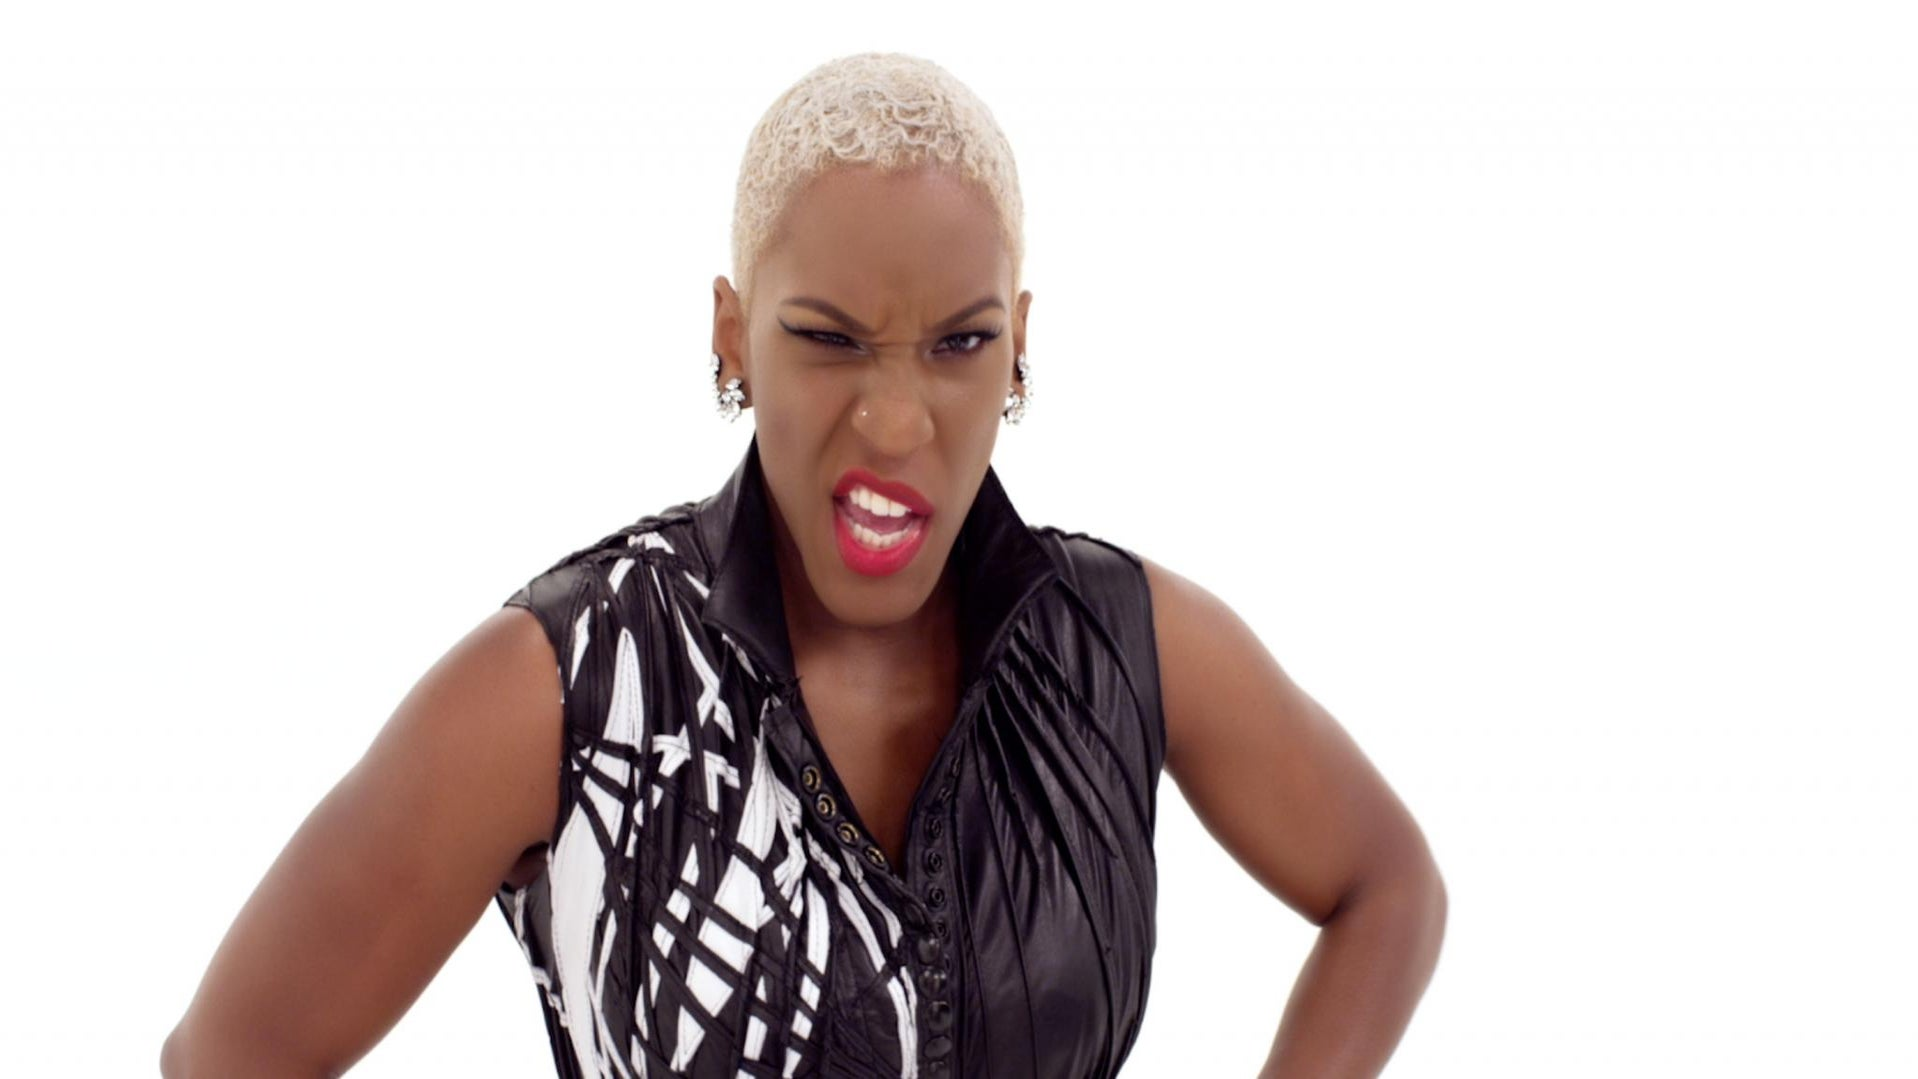 EXCLUSIVE Premiere: Watch Liv Warfield's New Video, 'Why Do You Lie'